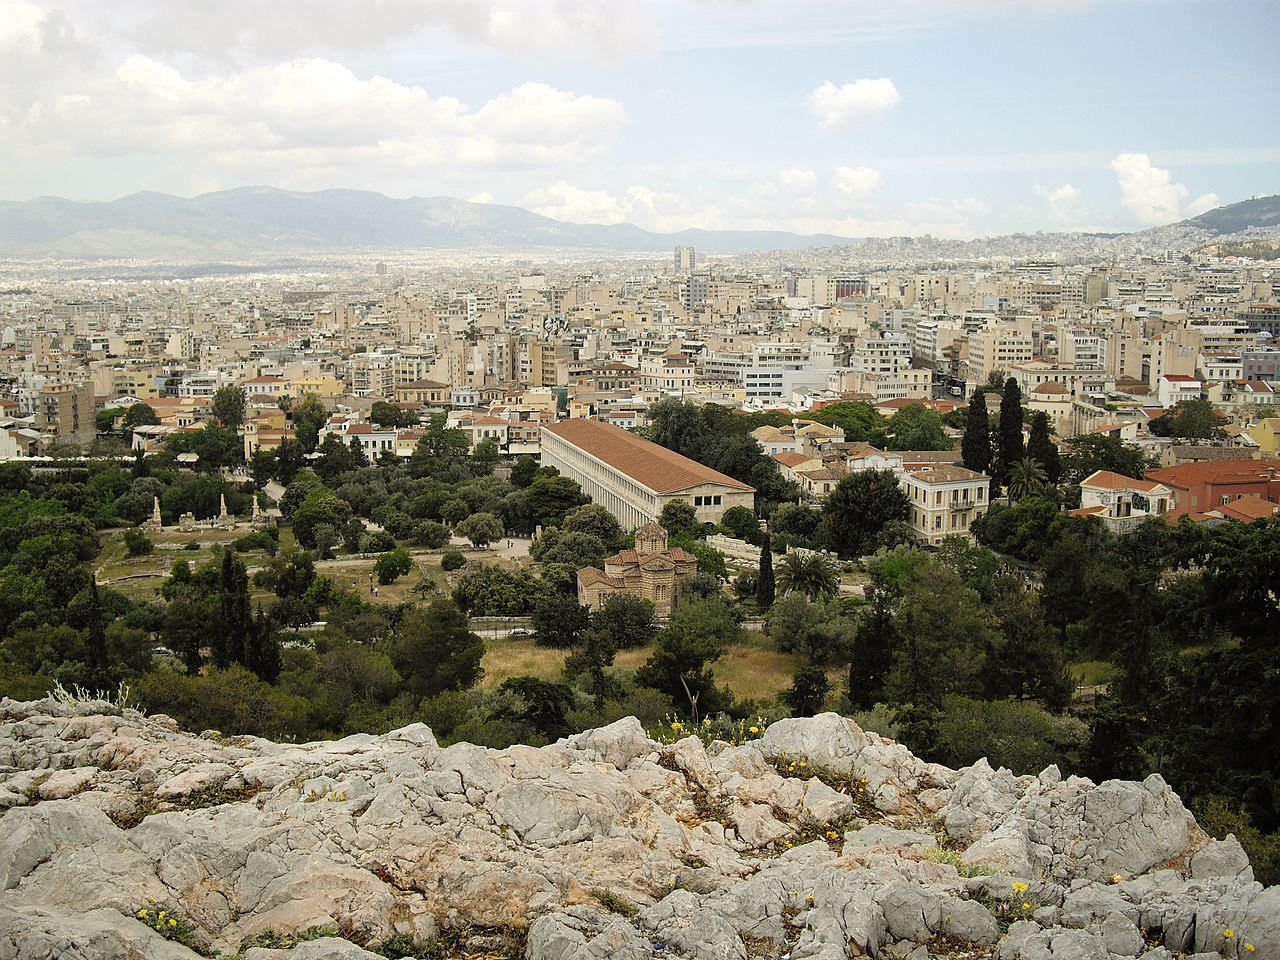 File:Agora of Athens seen from the Areopagus.JPG ...